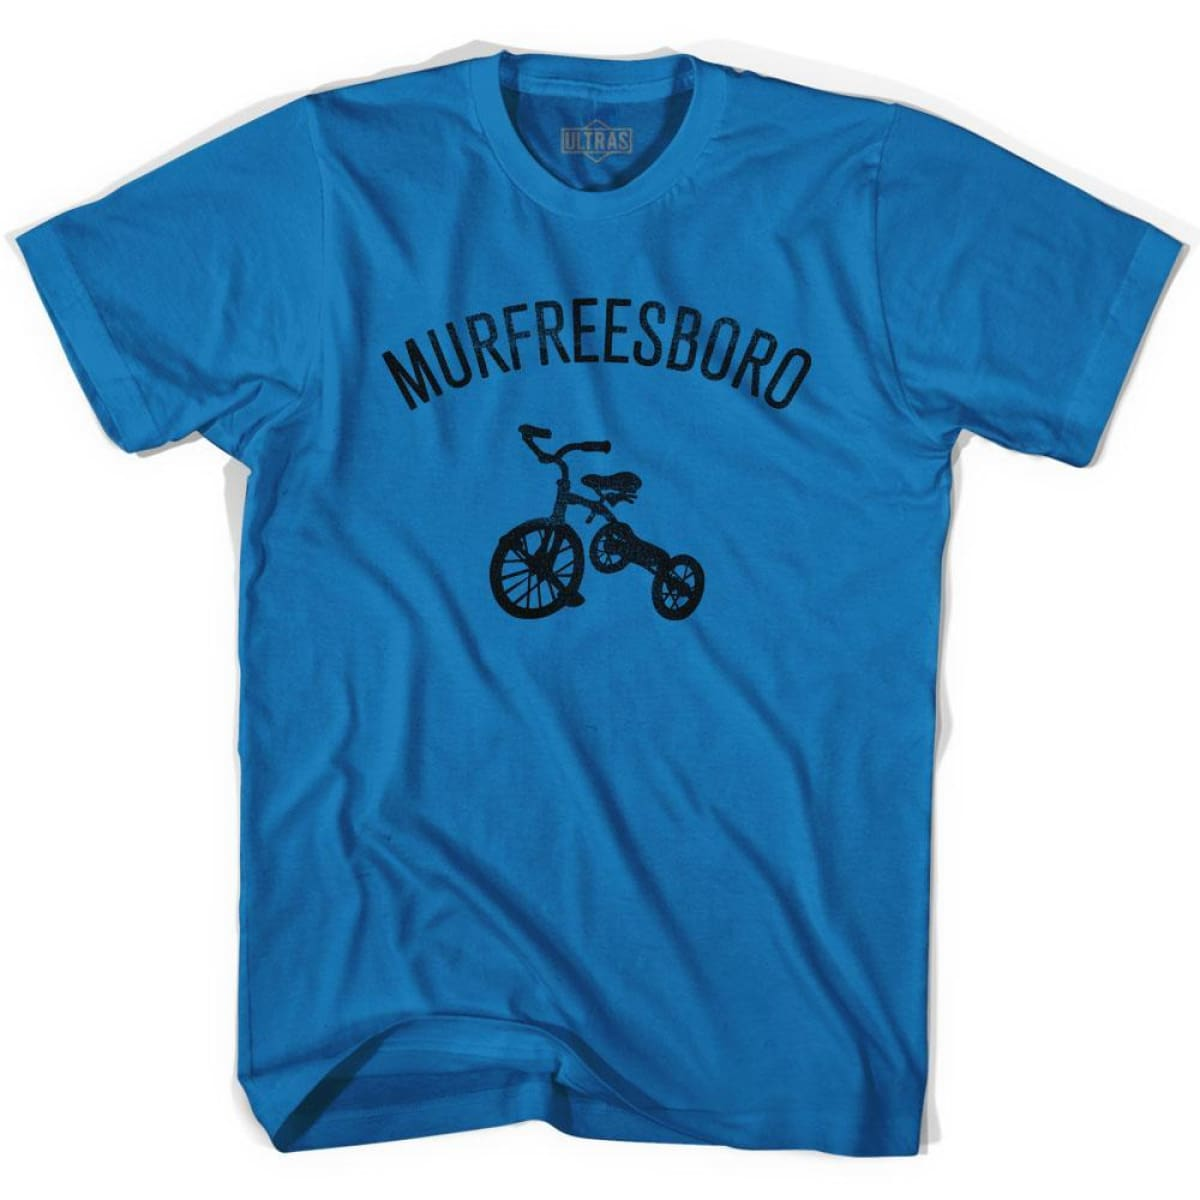 Murfreesboro City Tricycle Adult Cotton T-shirt - Tricycle City